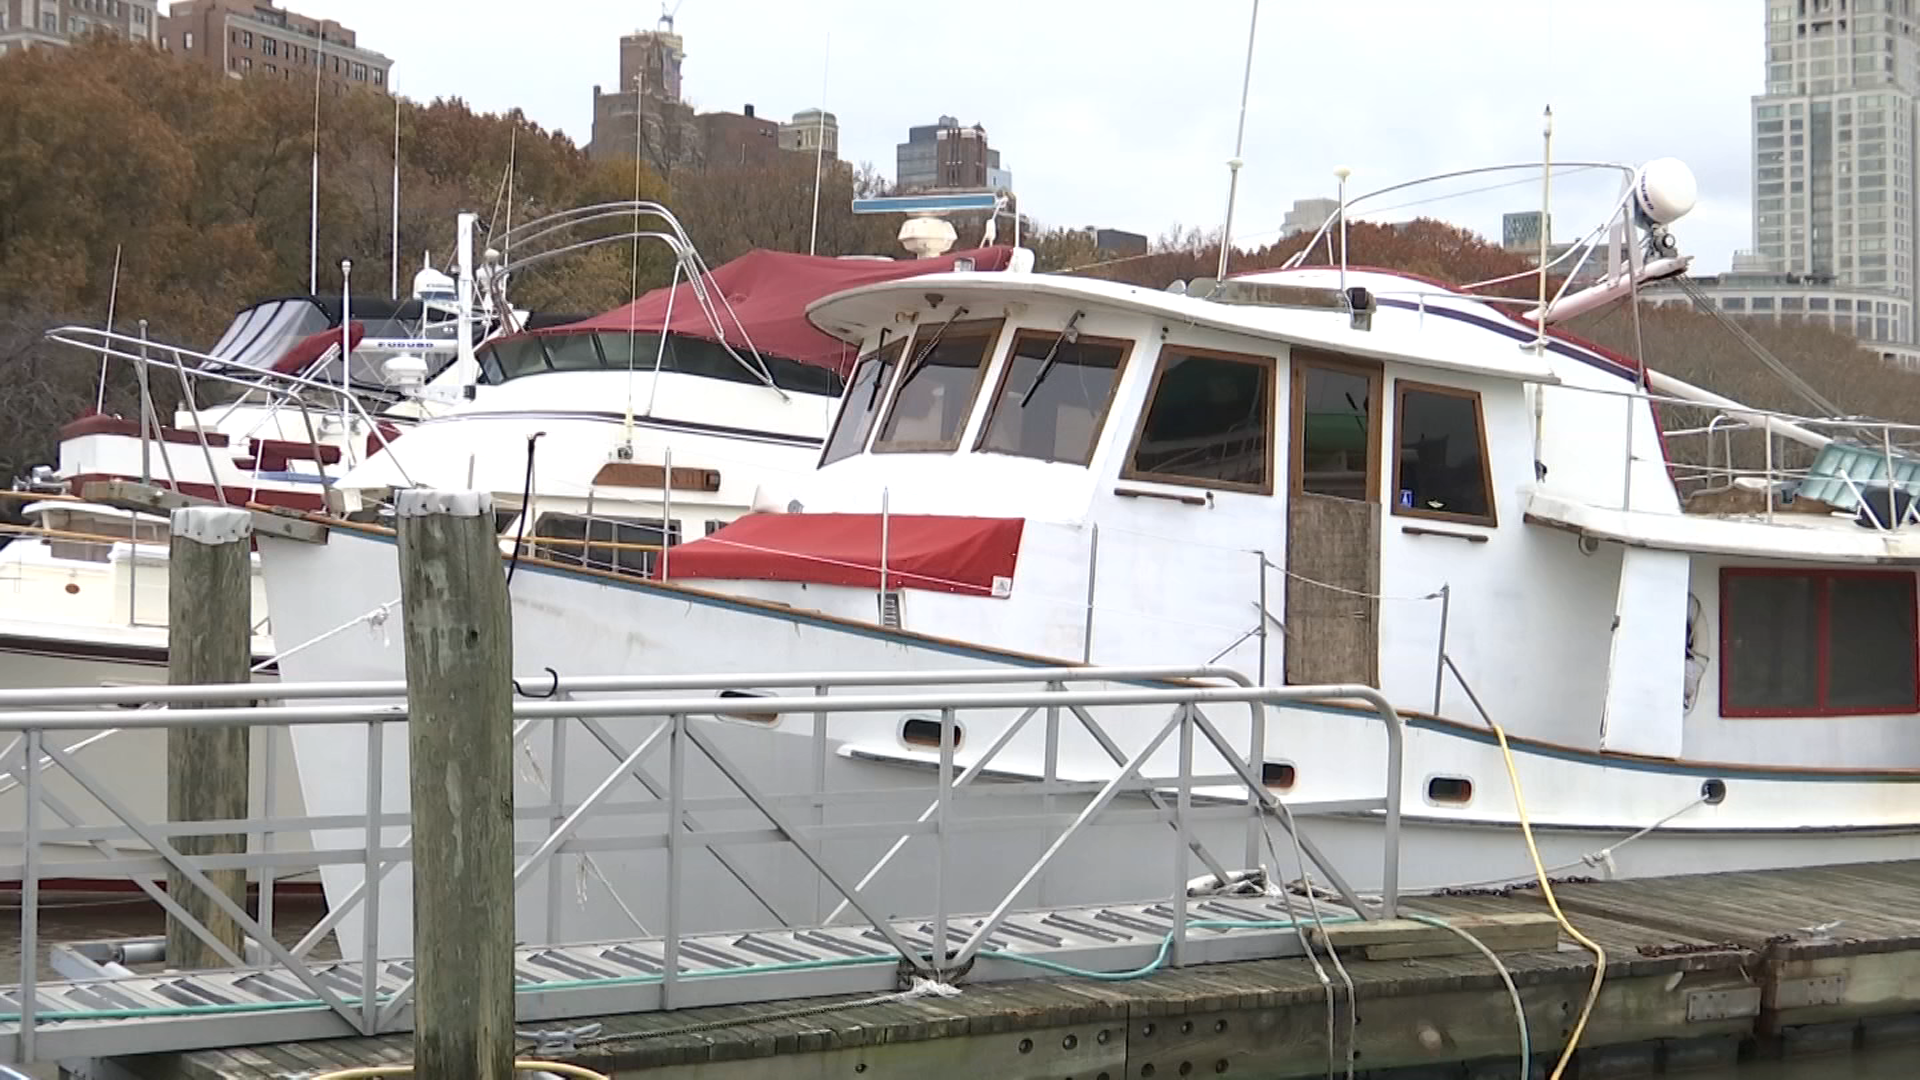 Surprising Small Community Of Boaters Still Calls The Hudson River Home Download Free Architecture Designs Scobabritishbridgeorg